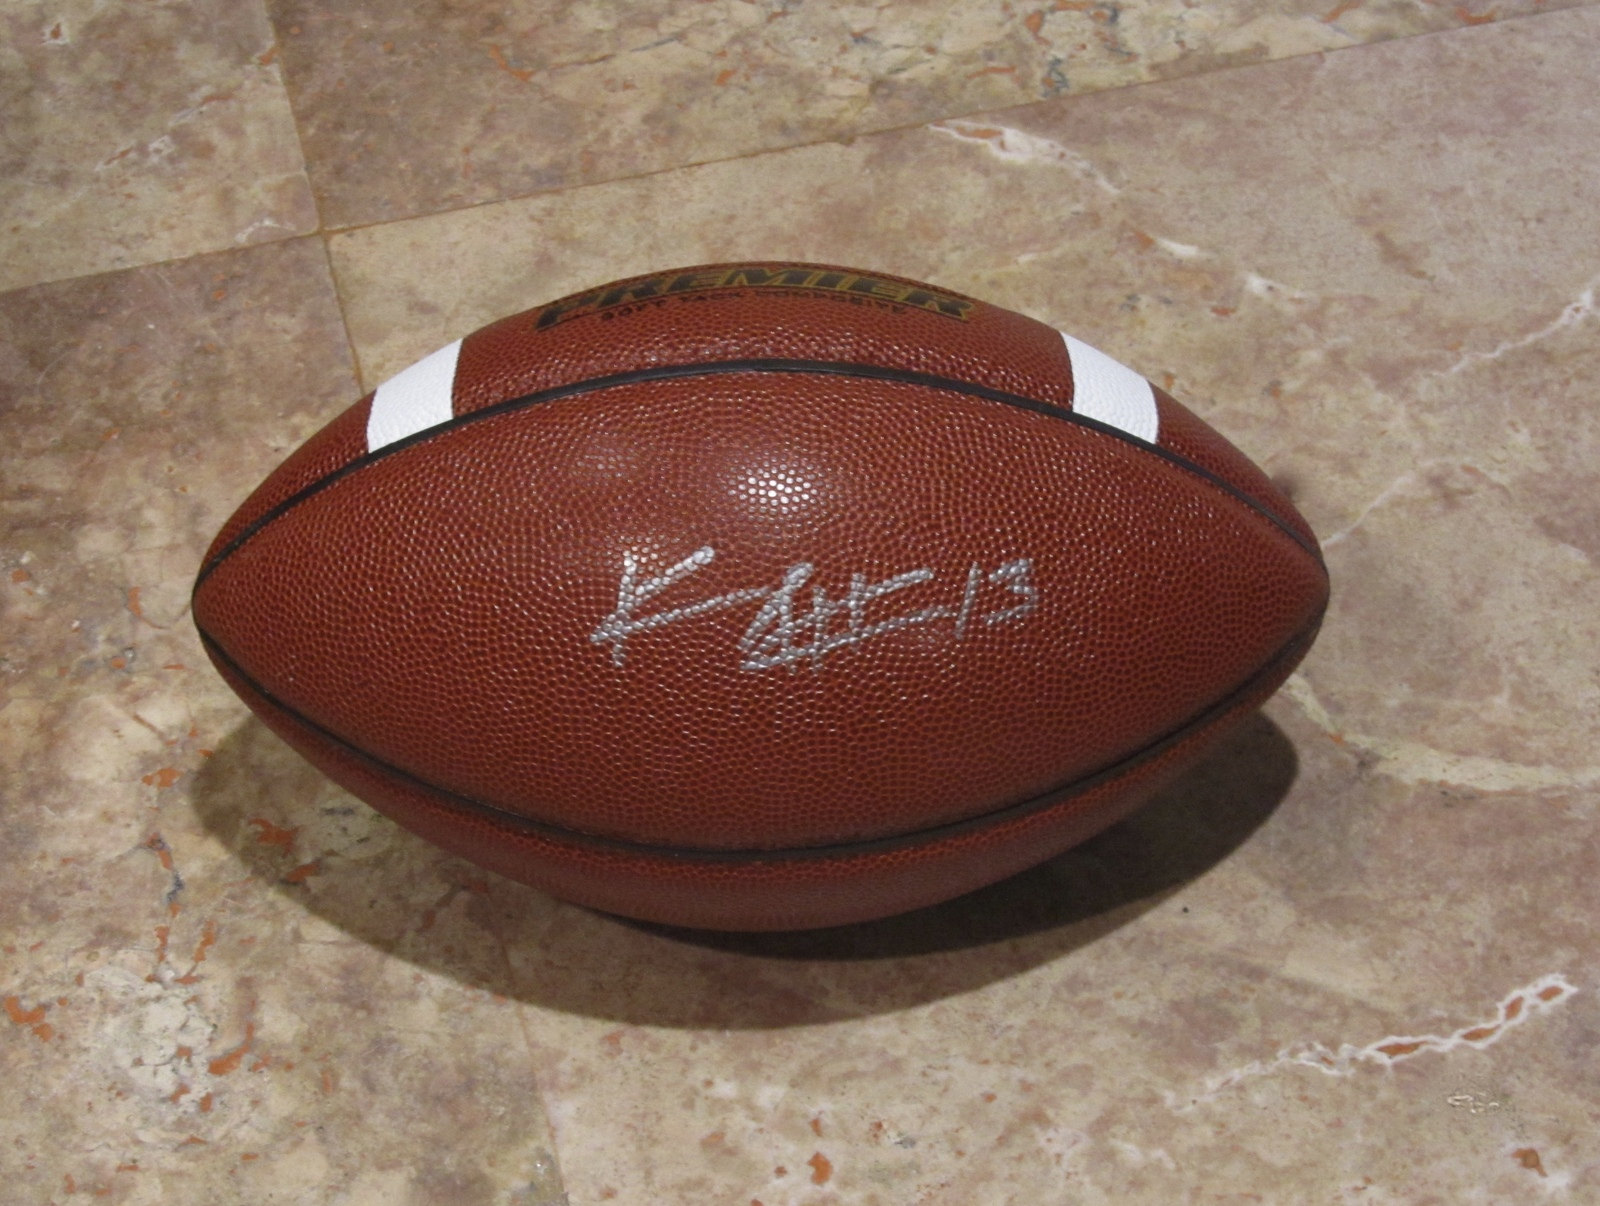 KEENAN ALLEN AUTOGRAPHED HAND SIGNED FOOTBALL SPALDING San Diego CHARGERS w/COA